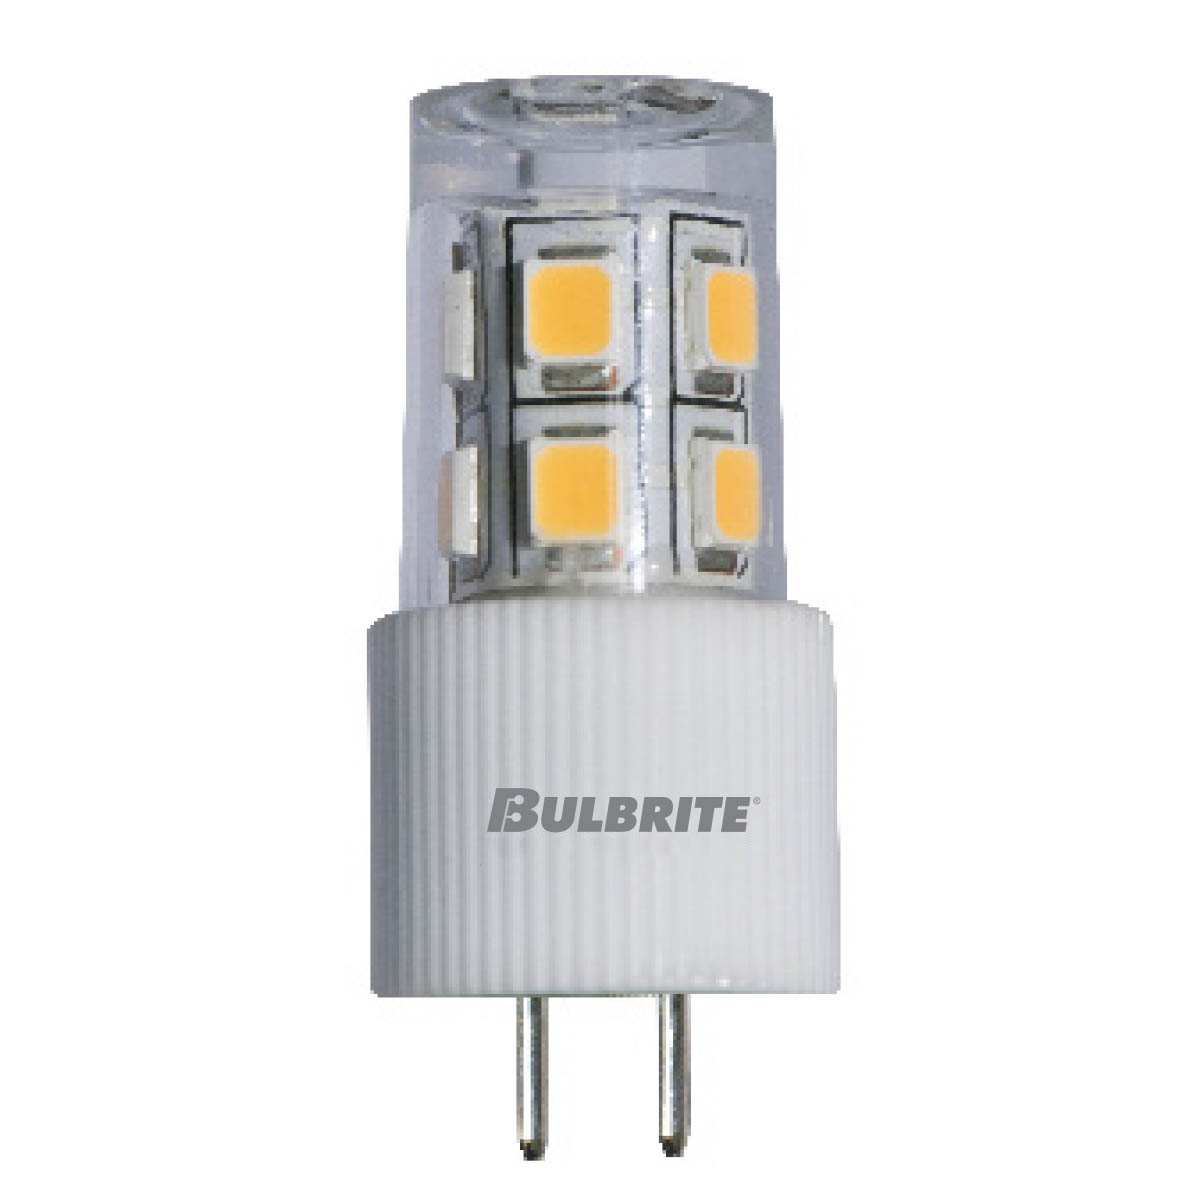 Replacement for Bulbrite 770173 Led by Technical Precision 2 Pack